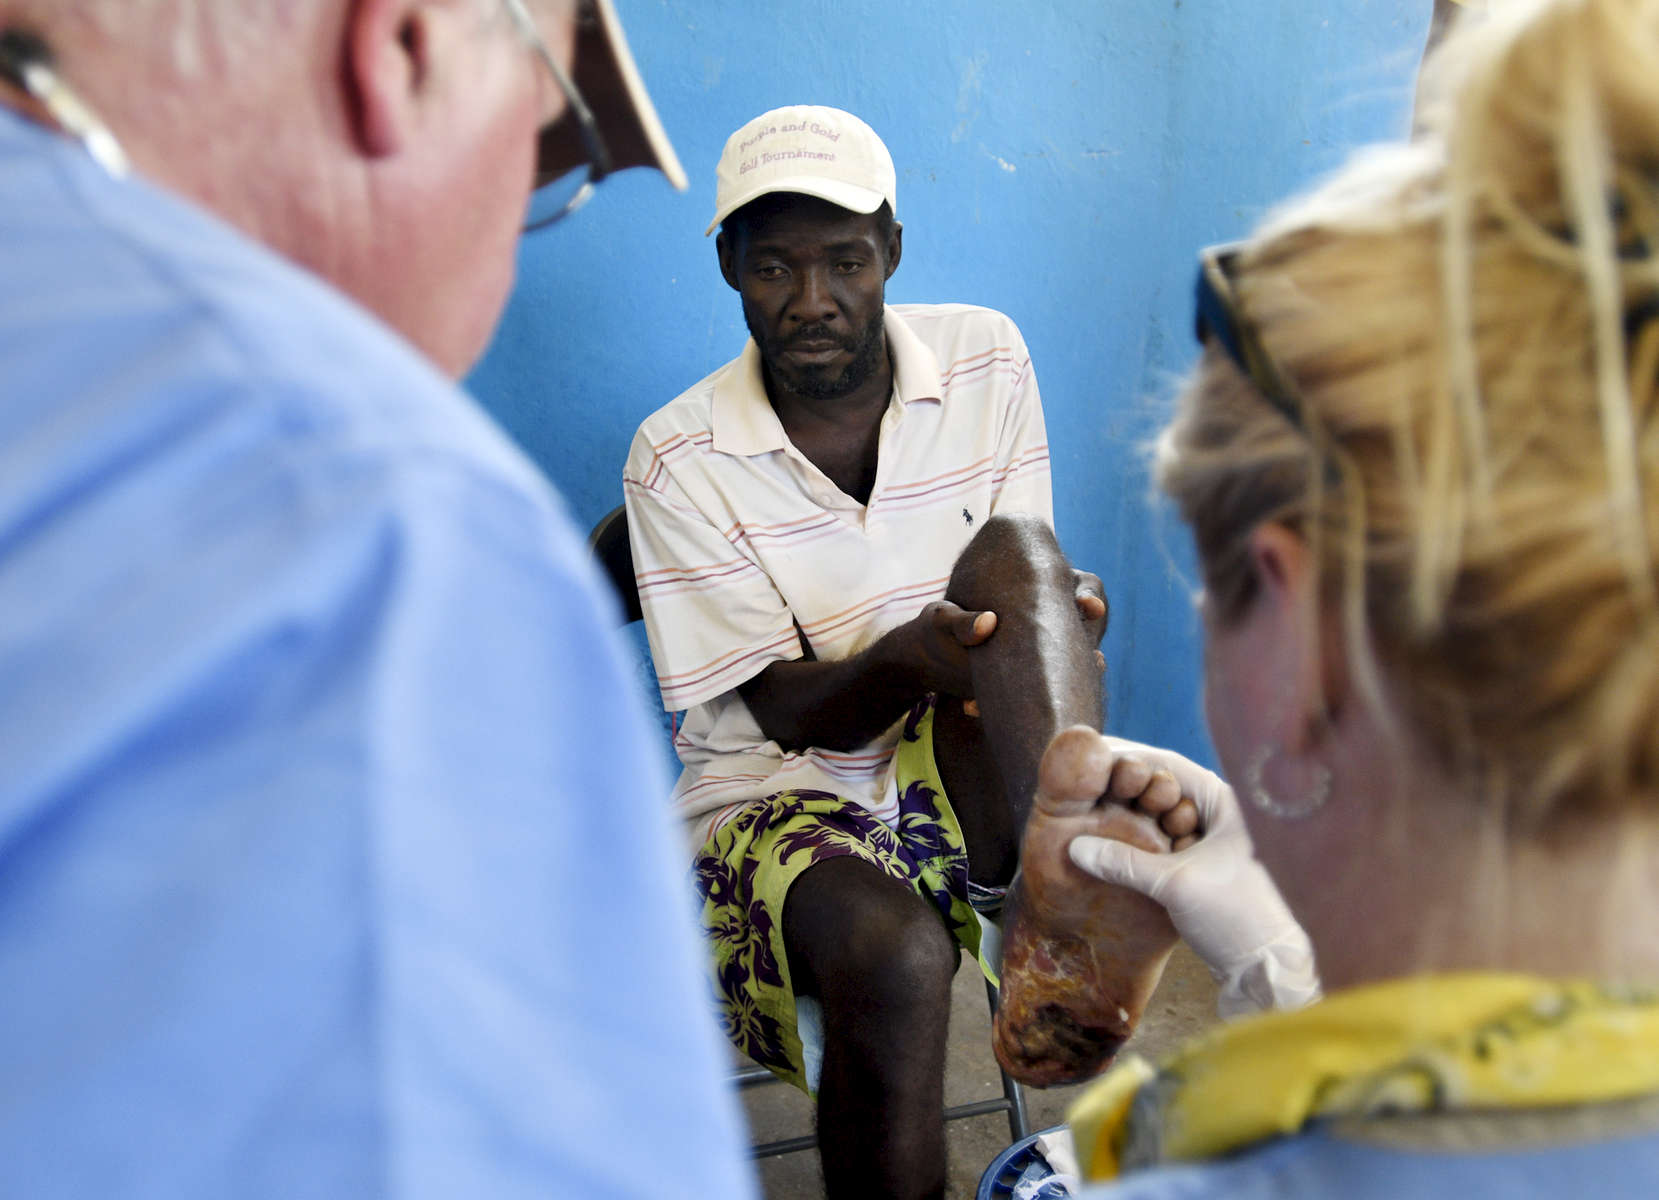 Roger Juno, 46, shows his infected wound to Dr. John Harrington and RN Donna Muse-Maynard at the Adventist Church in Ducis, Haiti on Wednesday, November 2, 2016. He stepped on a lightbulb in the commotion of Hurricane Matthew.